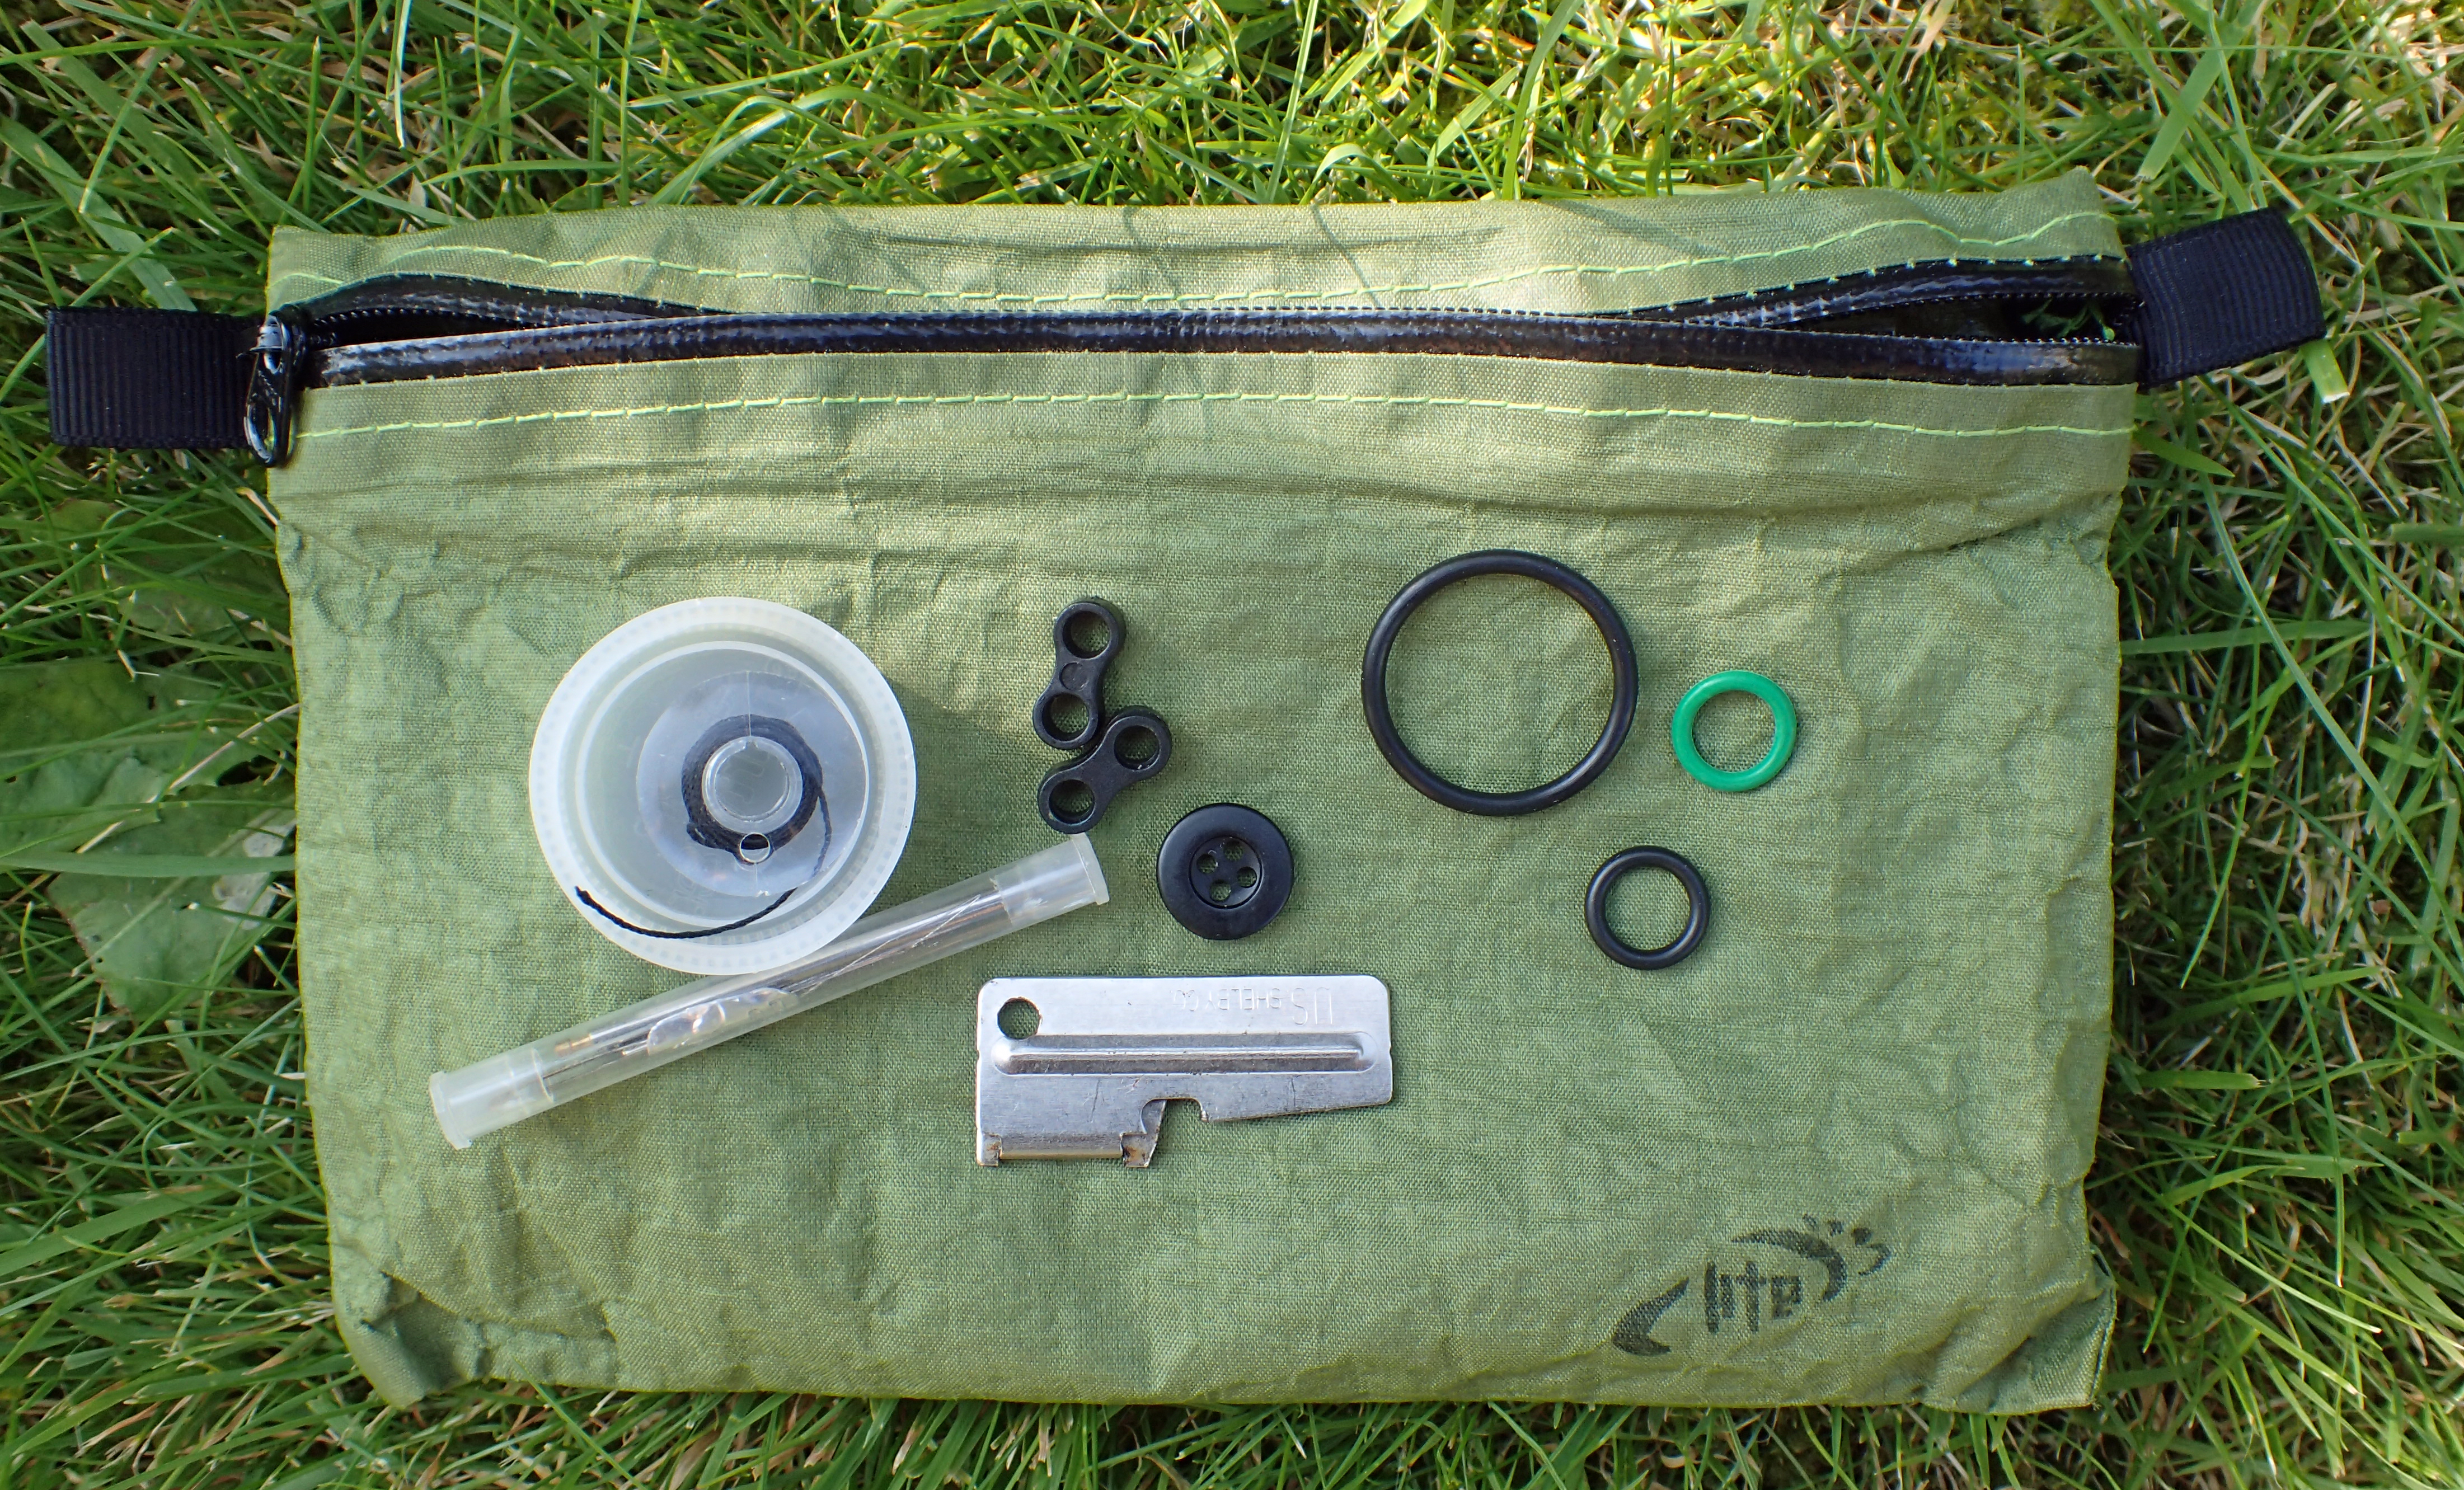 Ditty bag carried by Three Points of the Compass on trail contains replacement O-rings. For simplicity, these remain in here regardless of the stove being carried